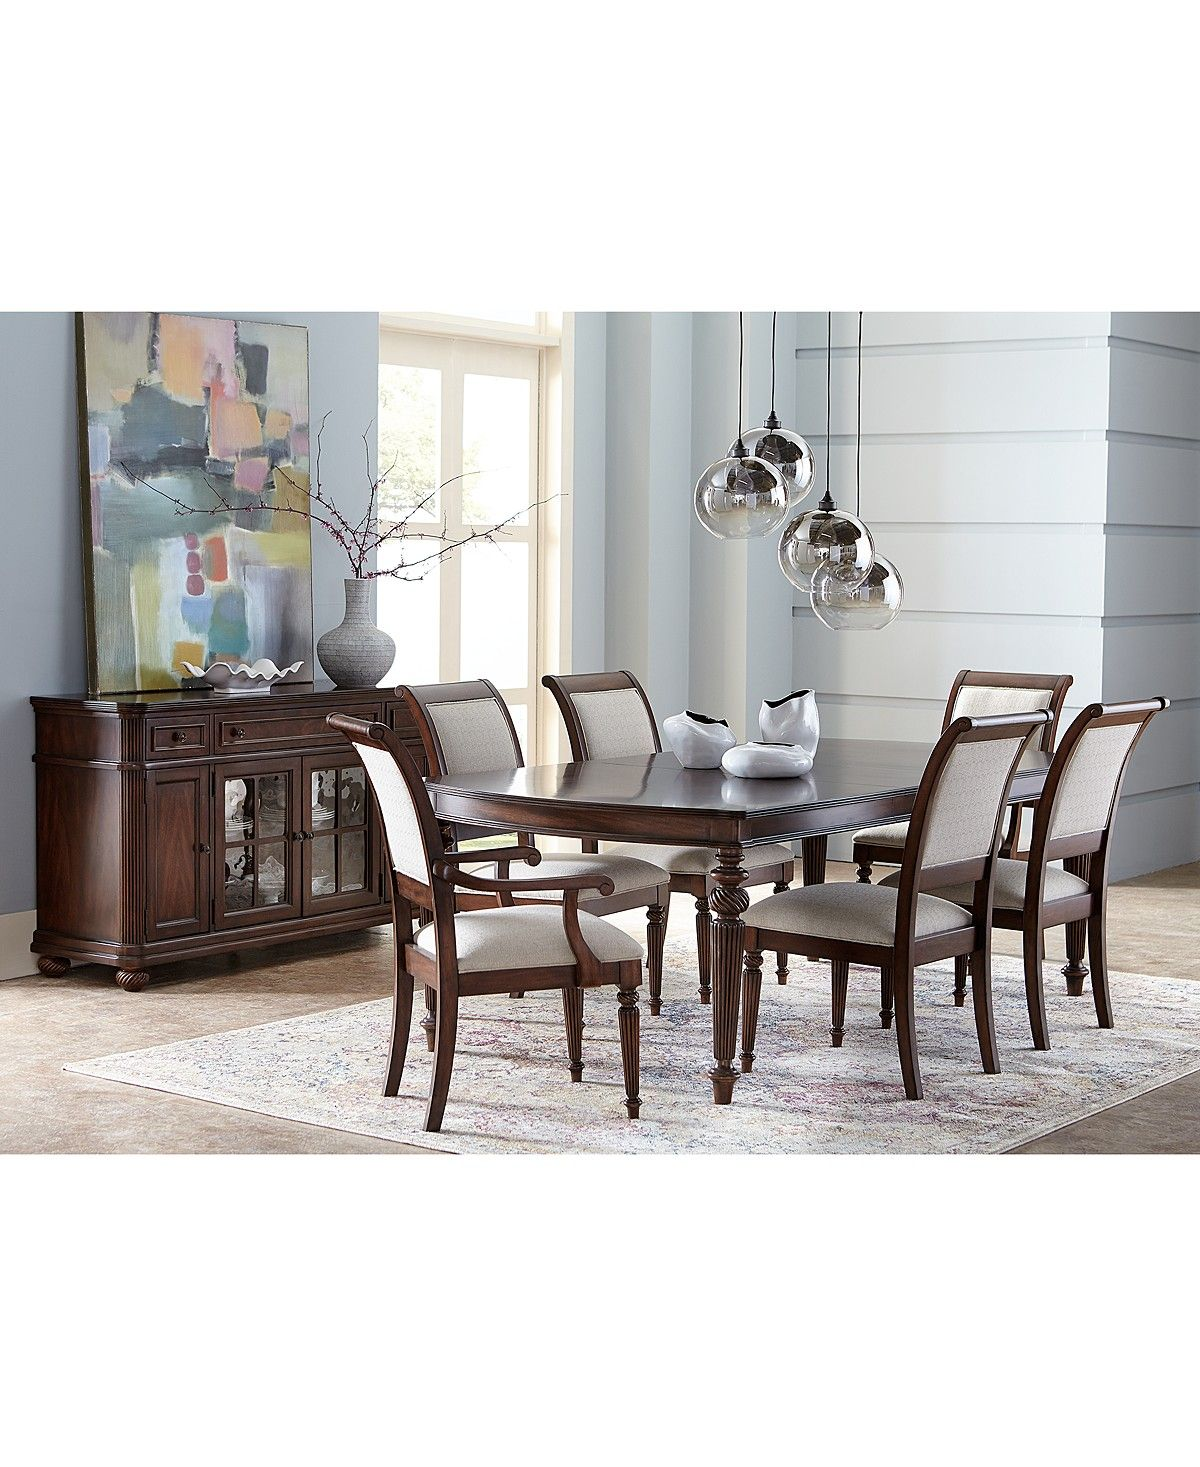 Charming Syrah Dining Furniture, 9 Pc. Set (Dining Table, 6 Side Chairs U0026 2 Arm  Chairs)   Sale U0026 Closeout   Furniture   Macyu0027s